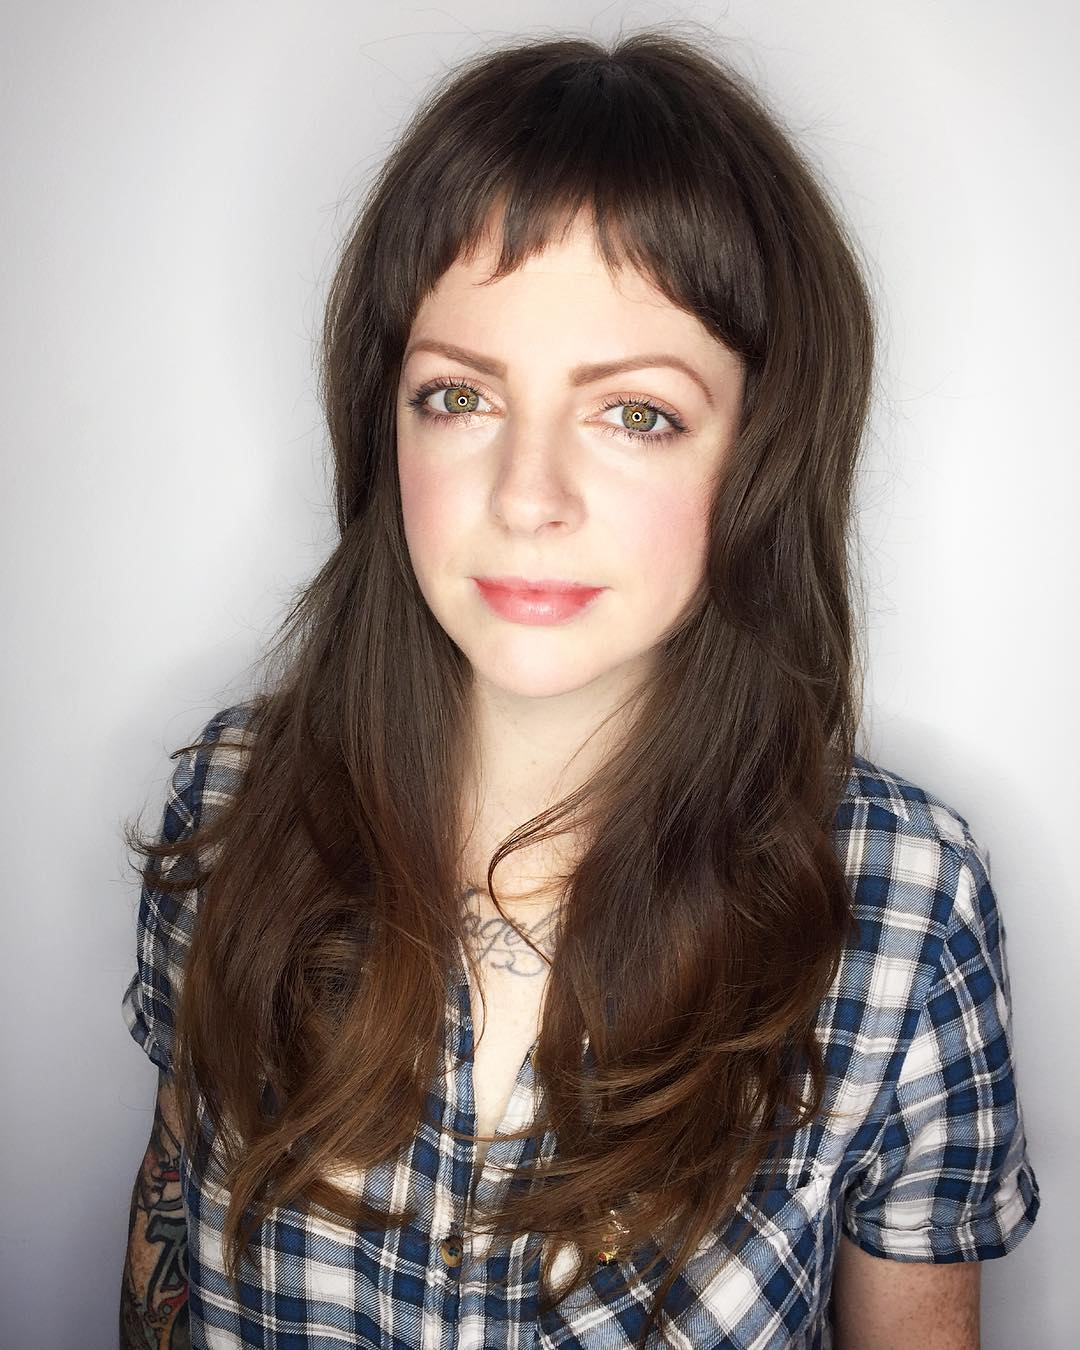 Long Wavy Layered Hair with Baby Fringe Bangs on Brunette Colored Hair with Lightened Ends